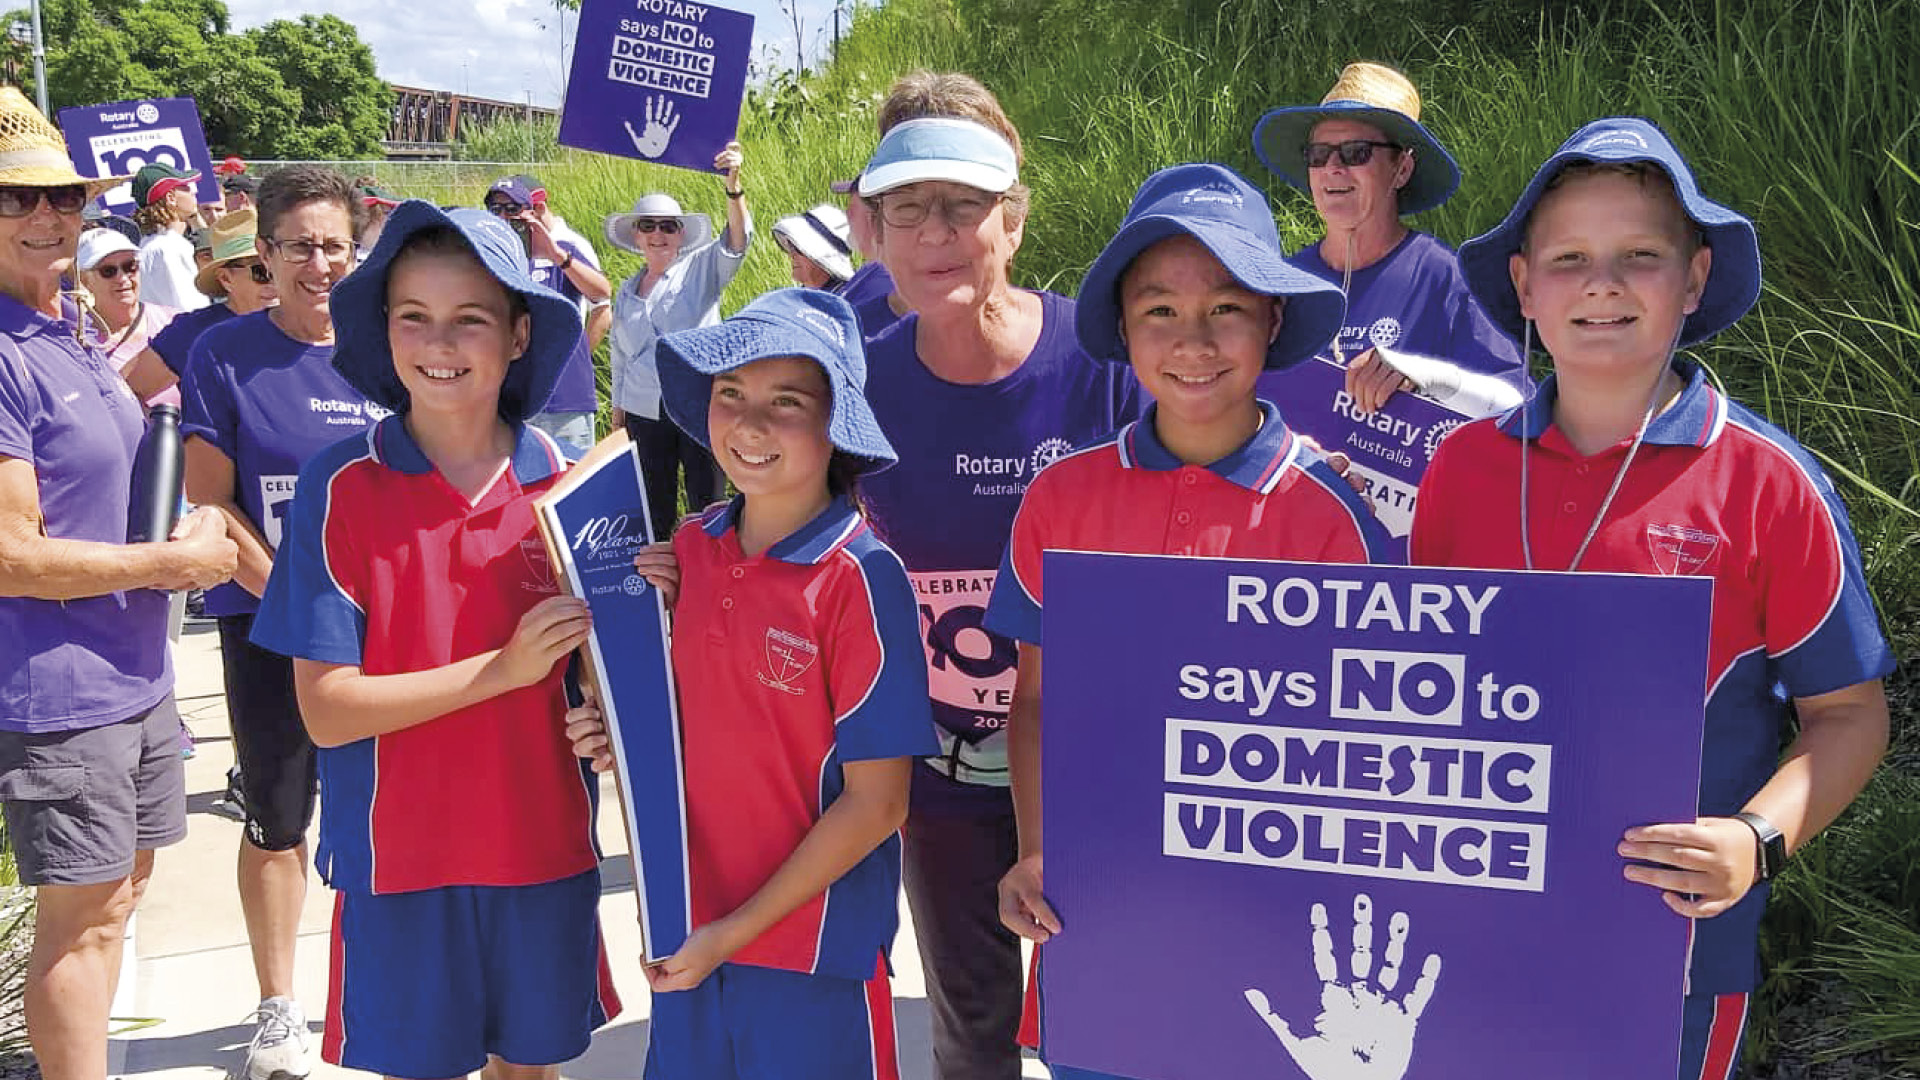 A relay with a cause District 9640 says 'No to Domestic Violence'